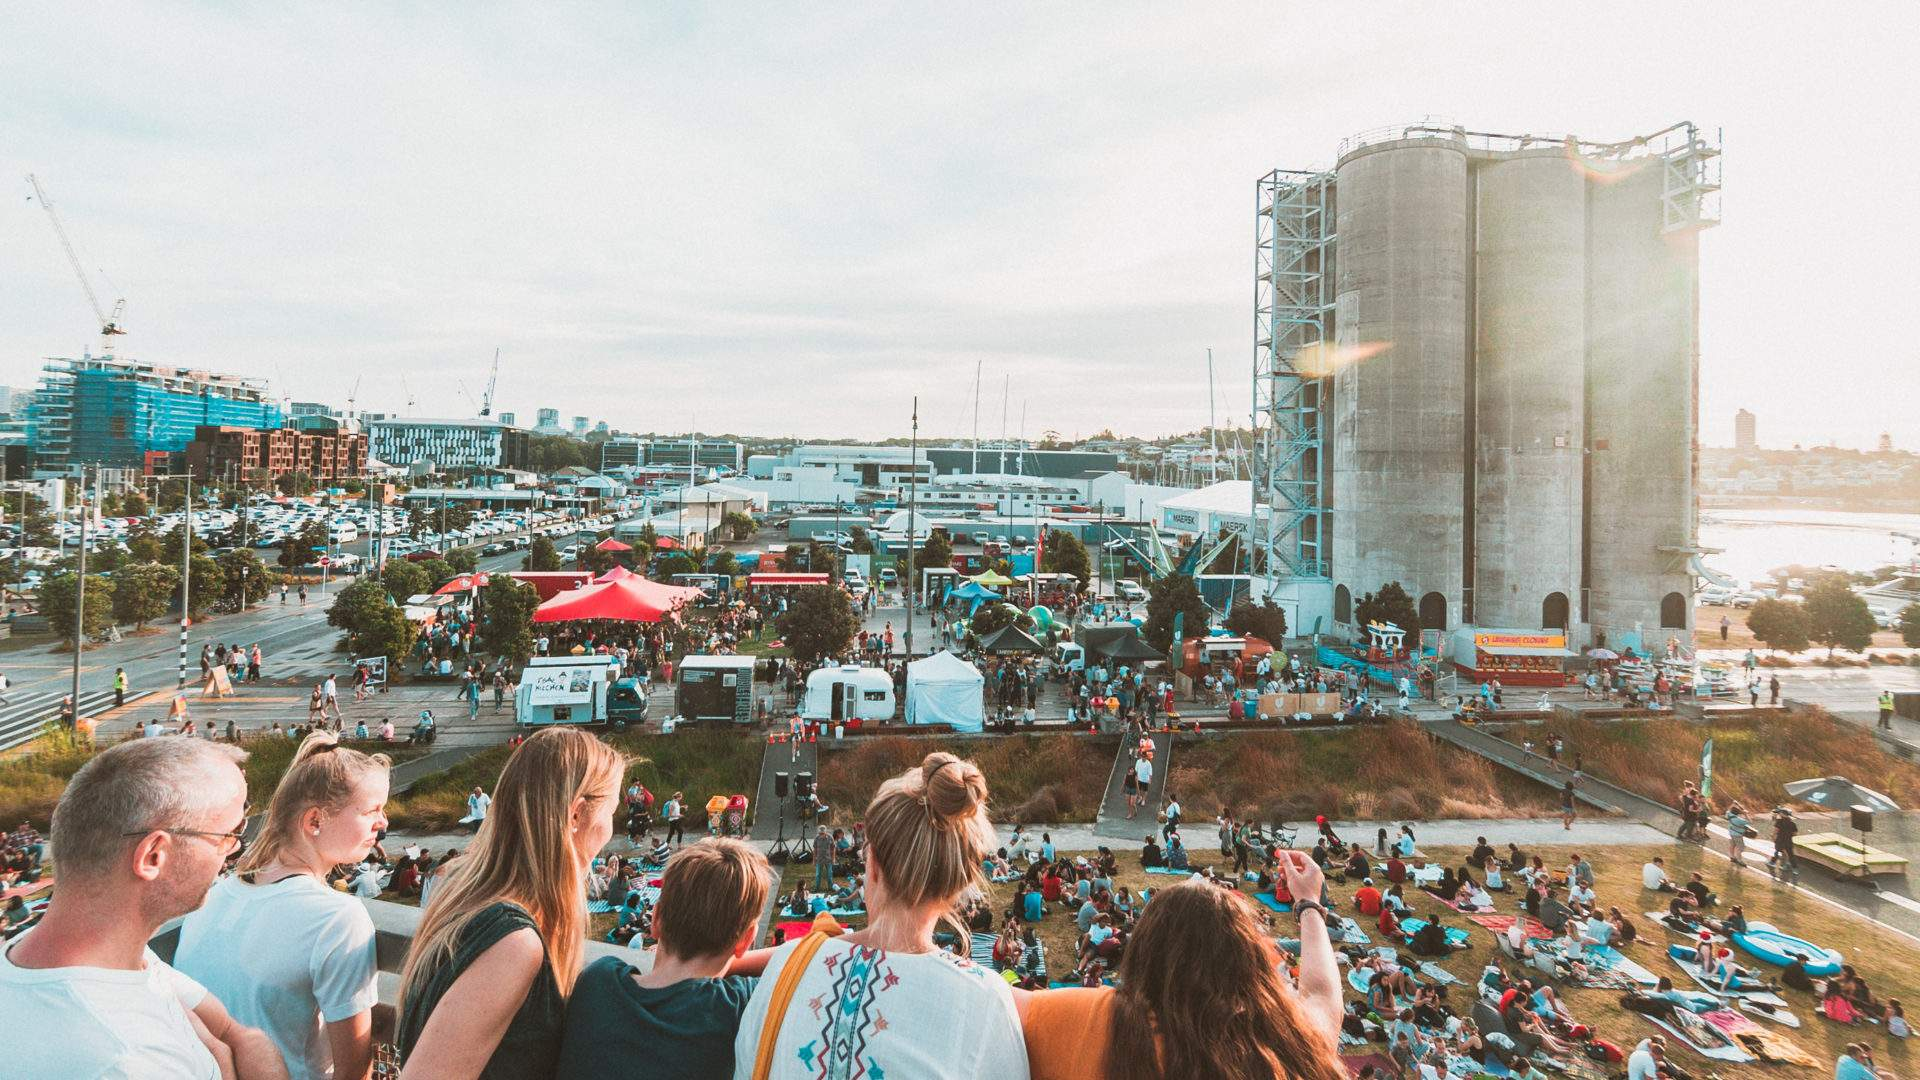 Silo Park's Huge Summer Lineup Is Here with Openair Films, Ice Cream Markets and Free Gigs